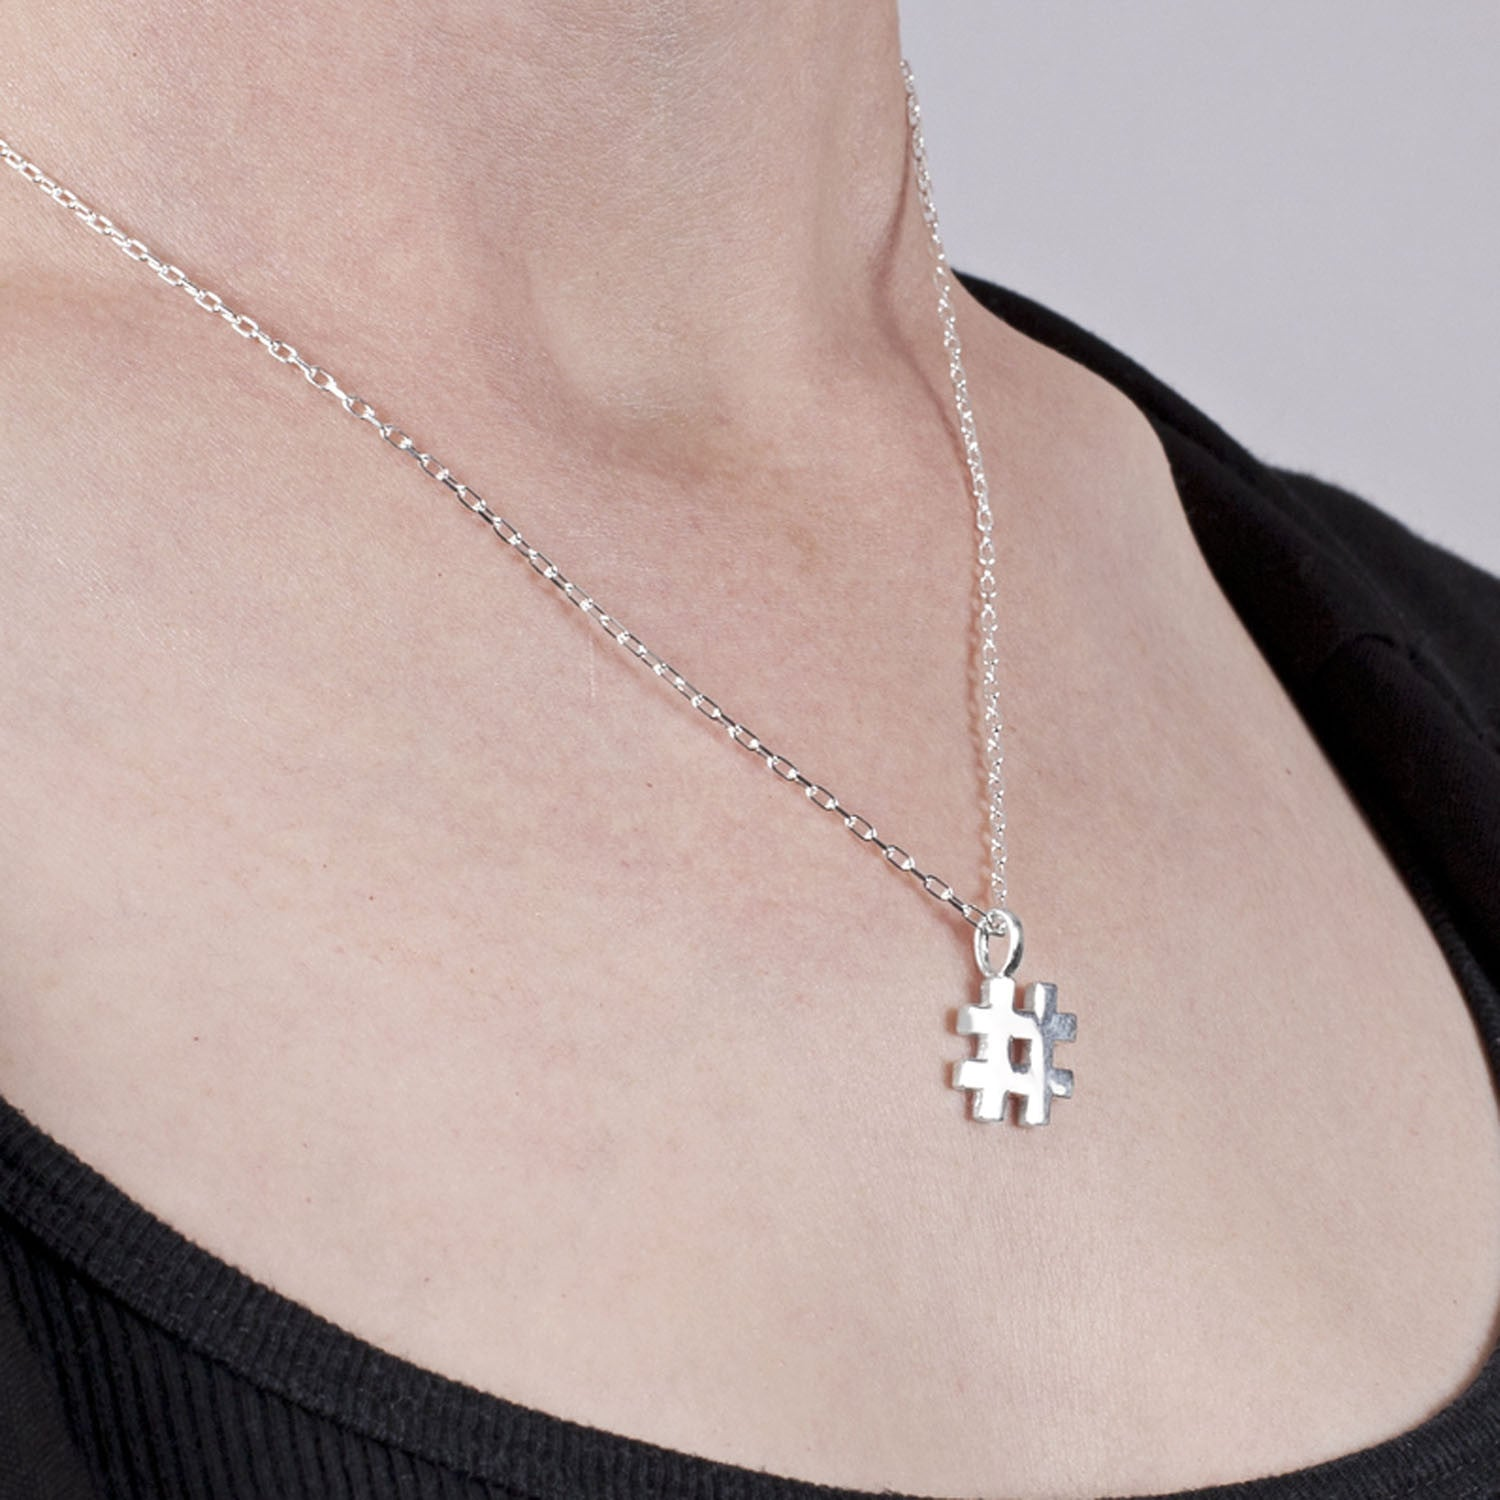 Hashtag Pendant in Sterling Silver